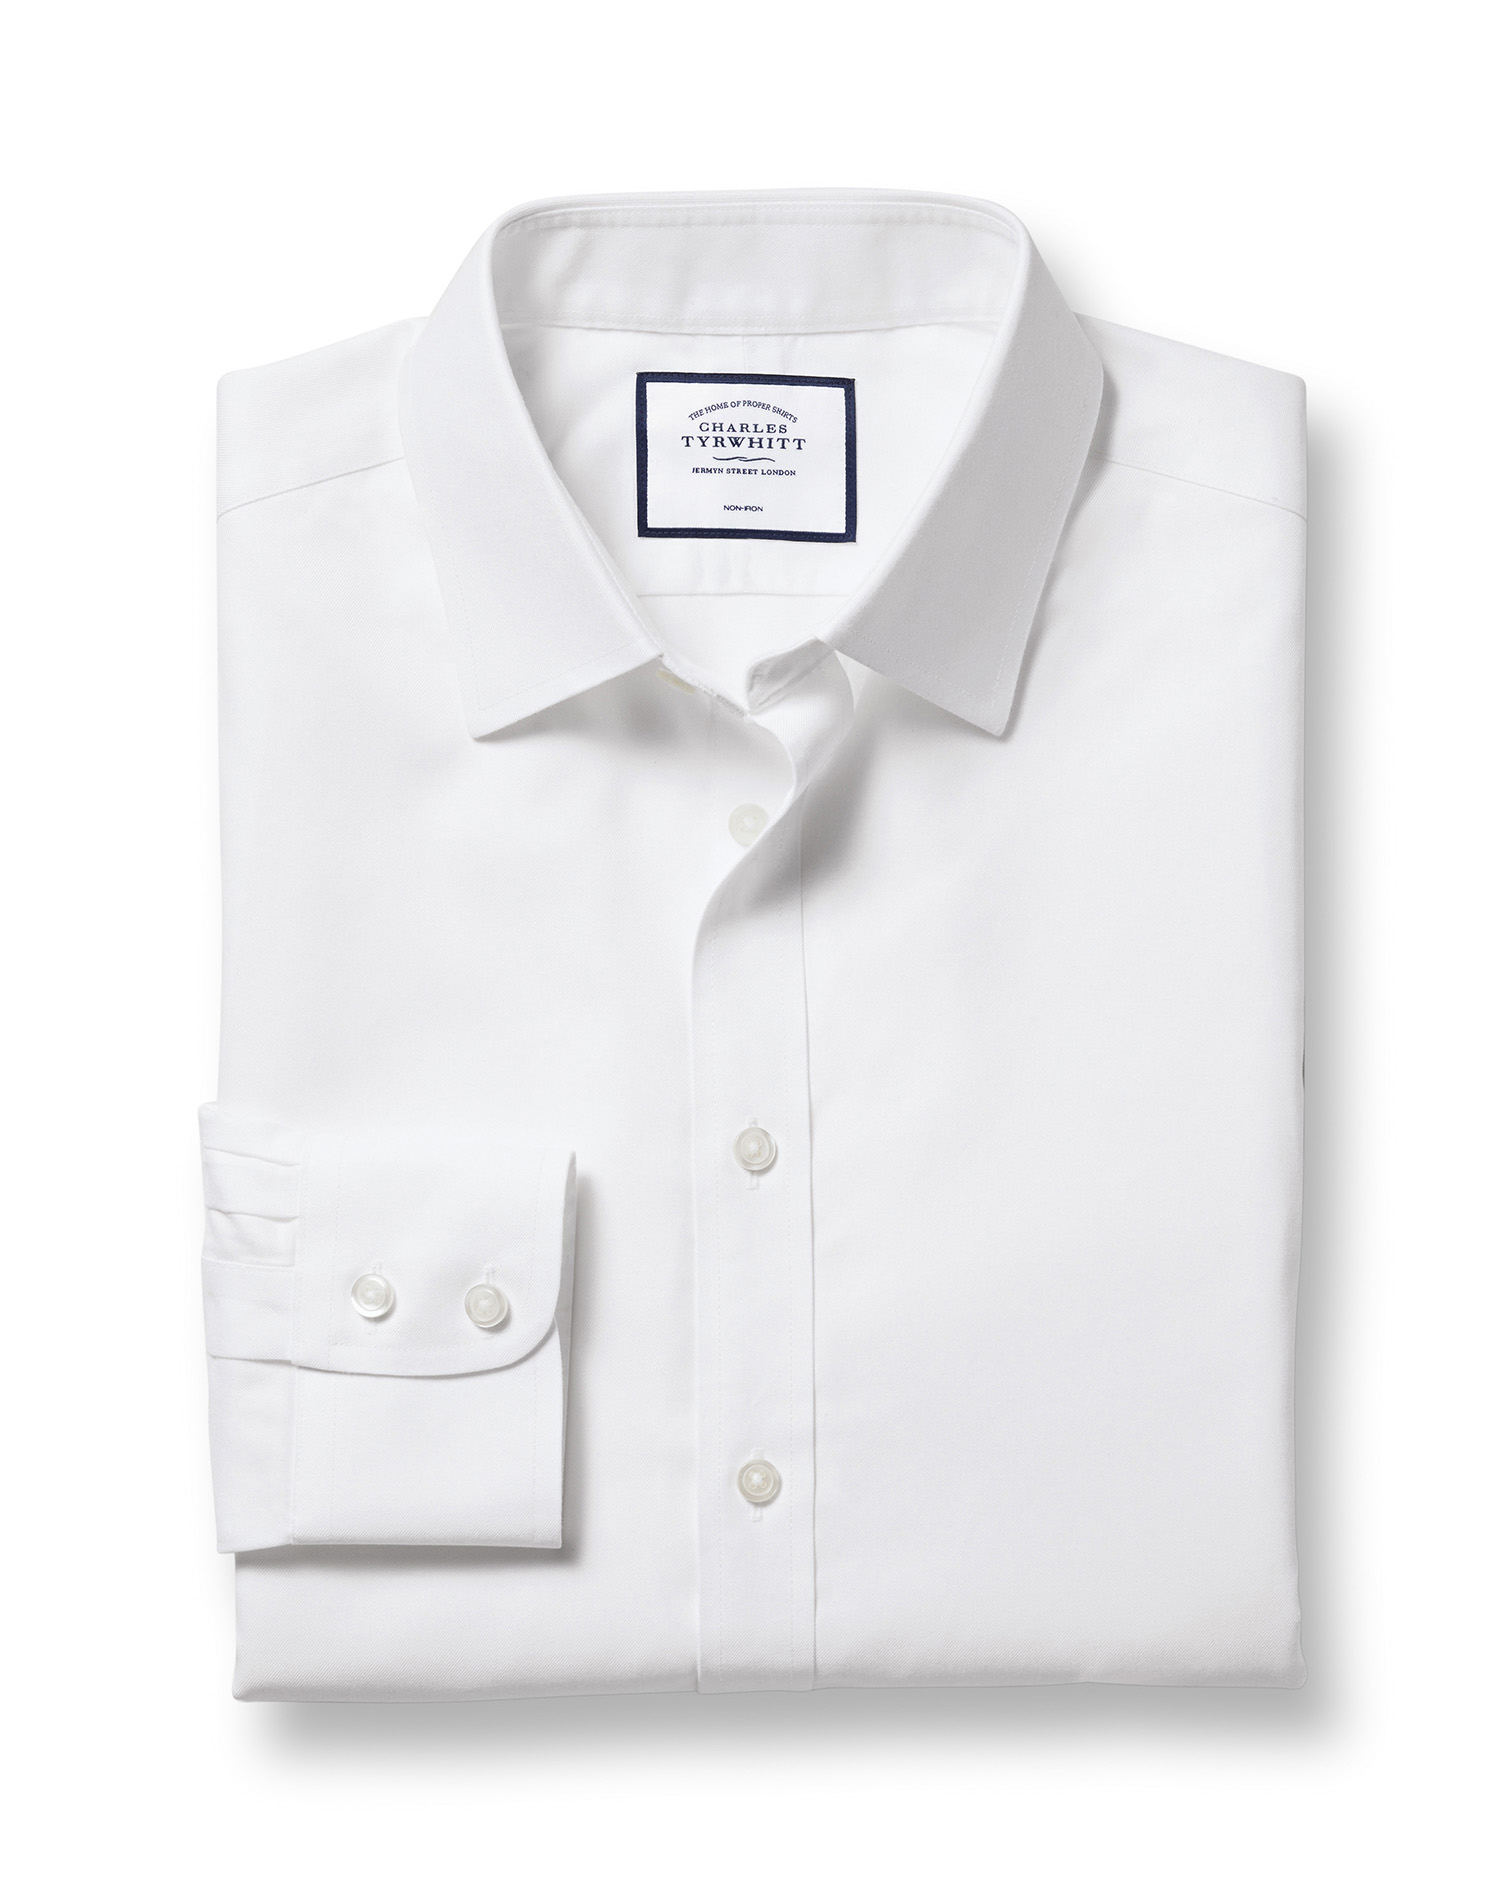 Classic Fit White Non-Iron Twill Cotton Formal Shirt by Charles Tyrwhitt